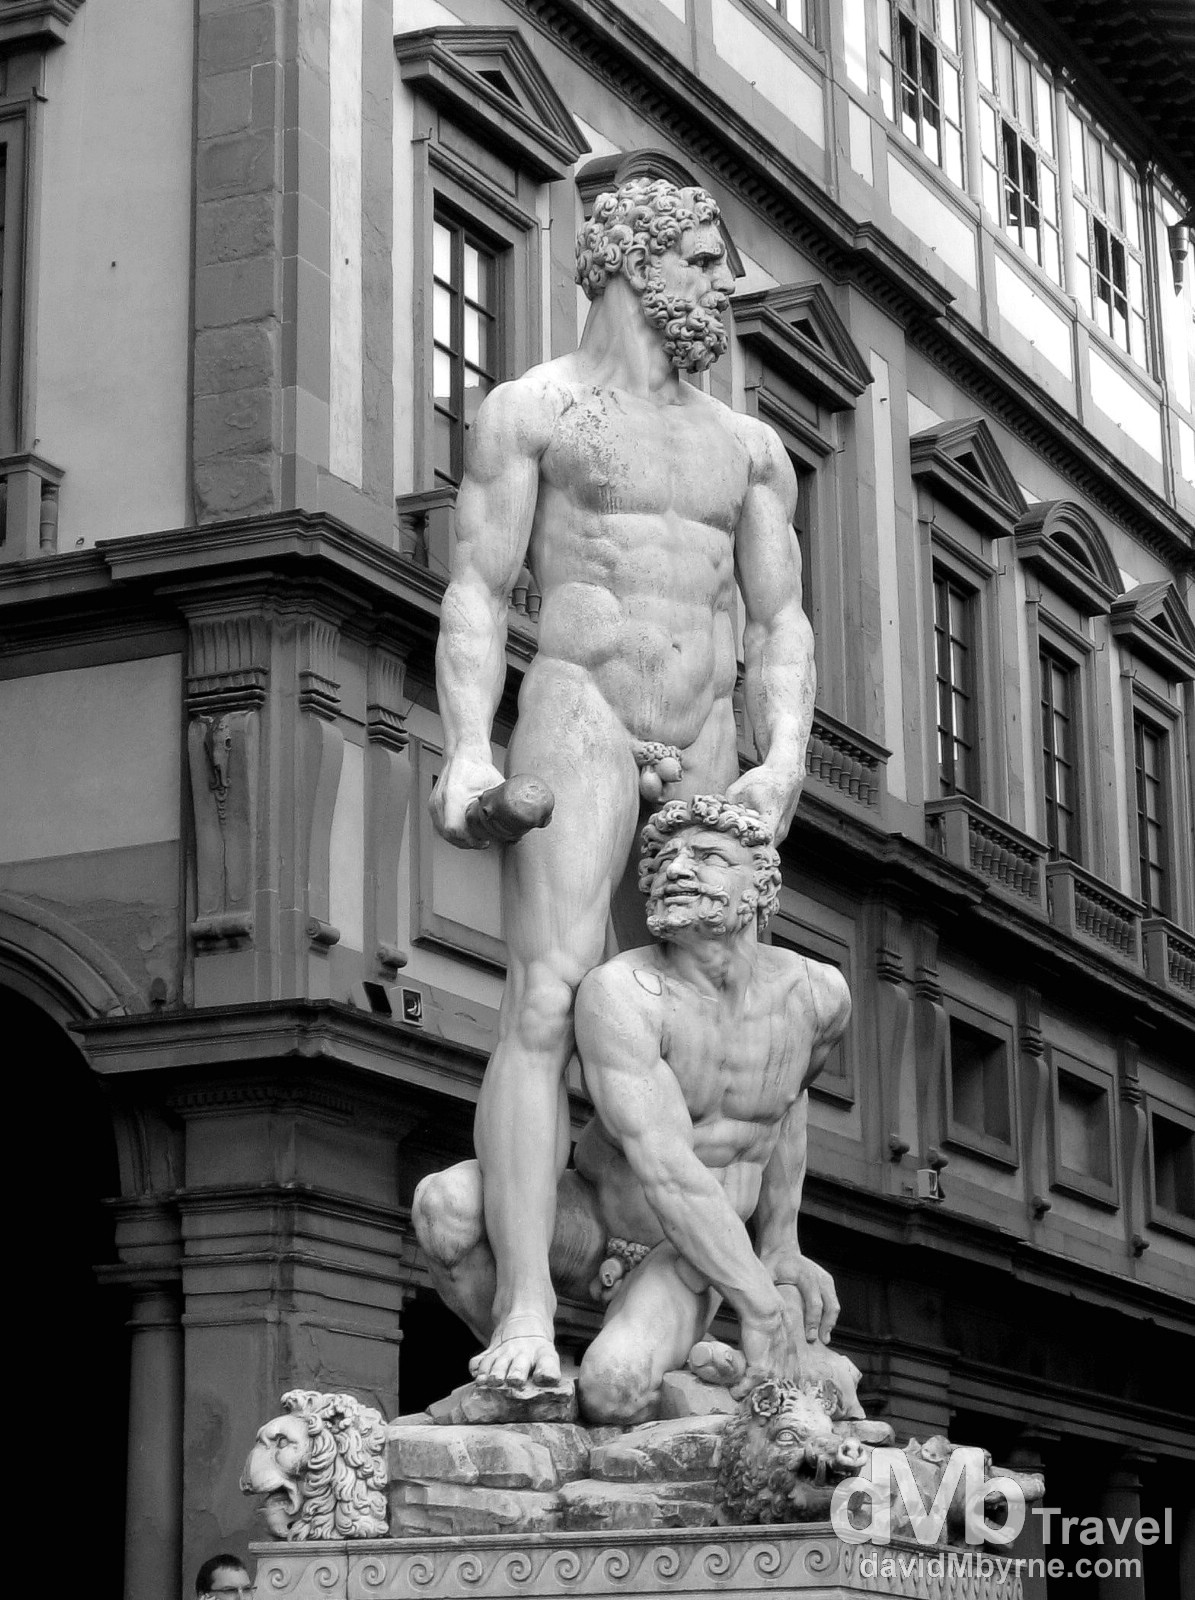 A statue fronting the Uffizi Gallery in Piazza della Signoria, Florence, Tuscany, Italy. August 28th, 2007.